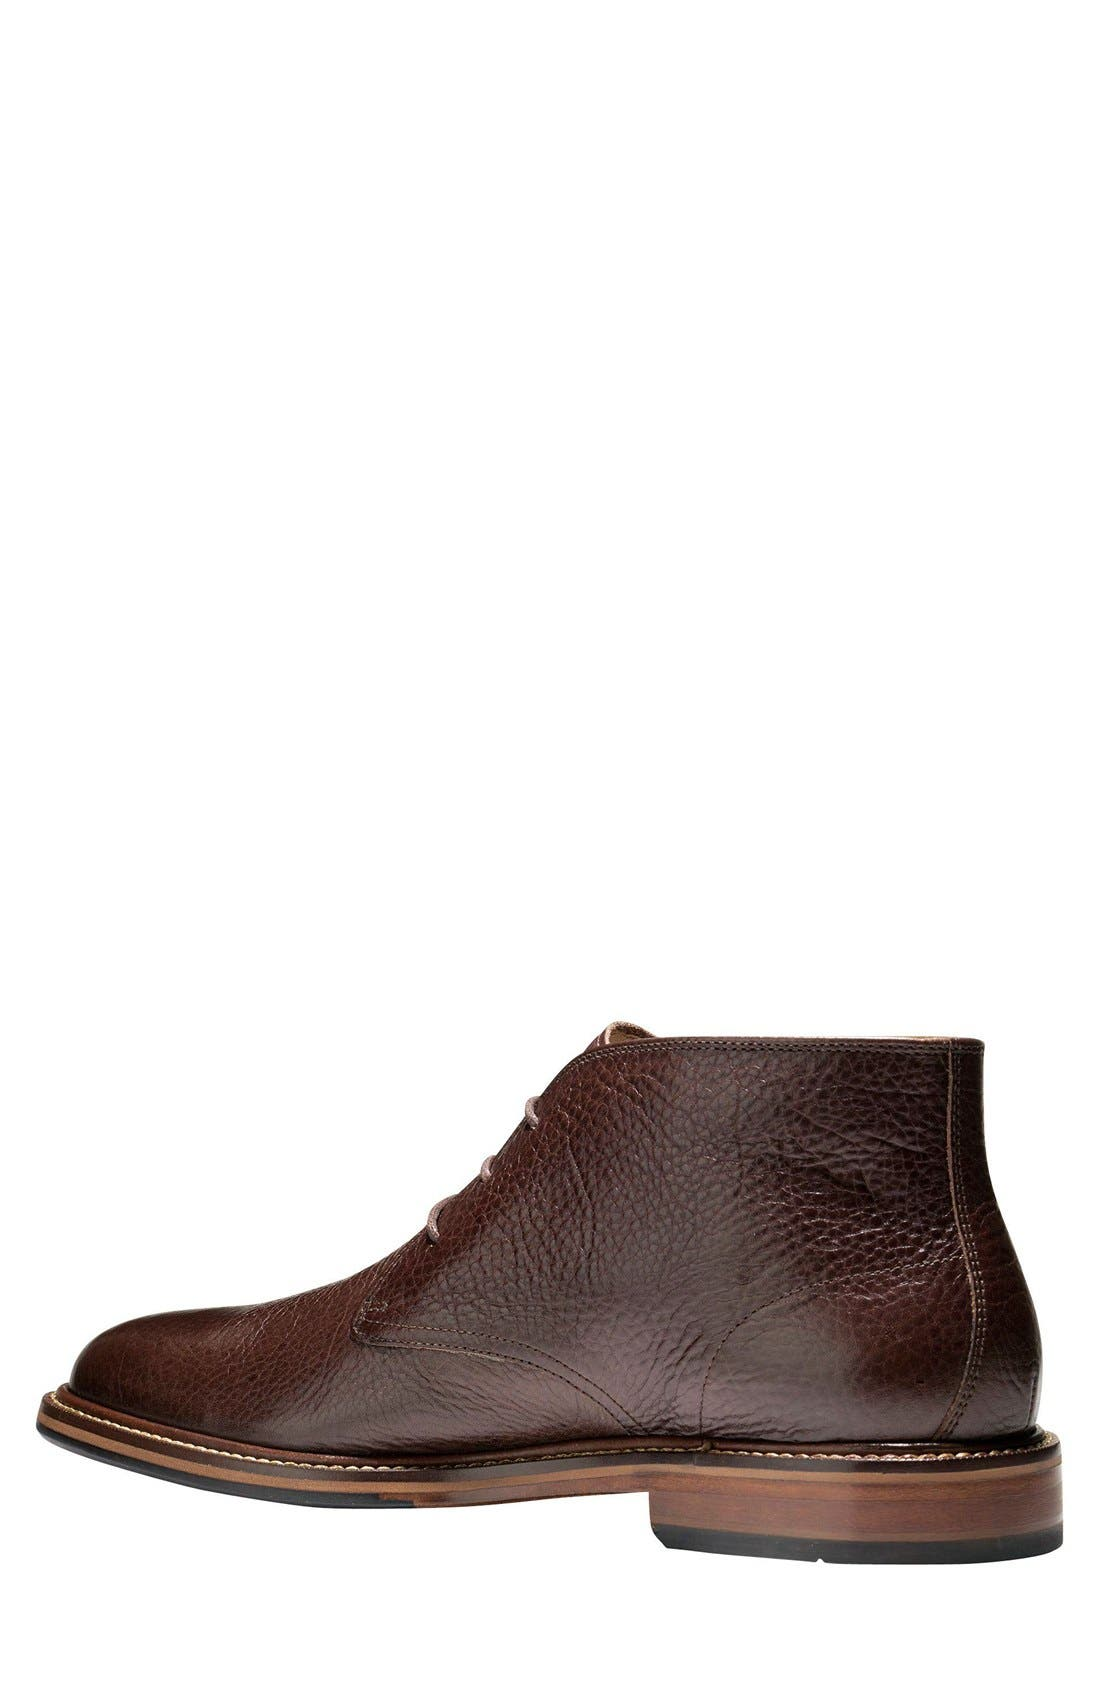 Alternate Image 2  - Cole Haan 'Barron' Chukka Boot (Men)